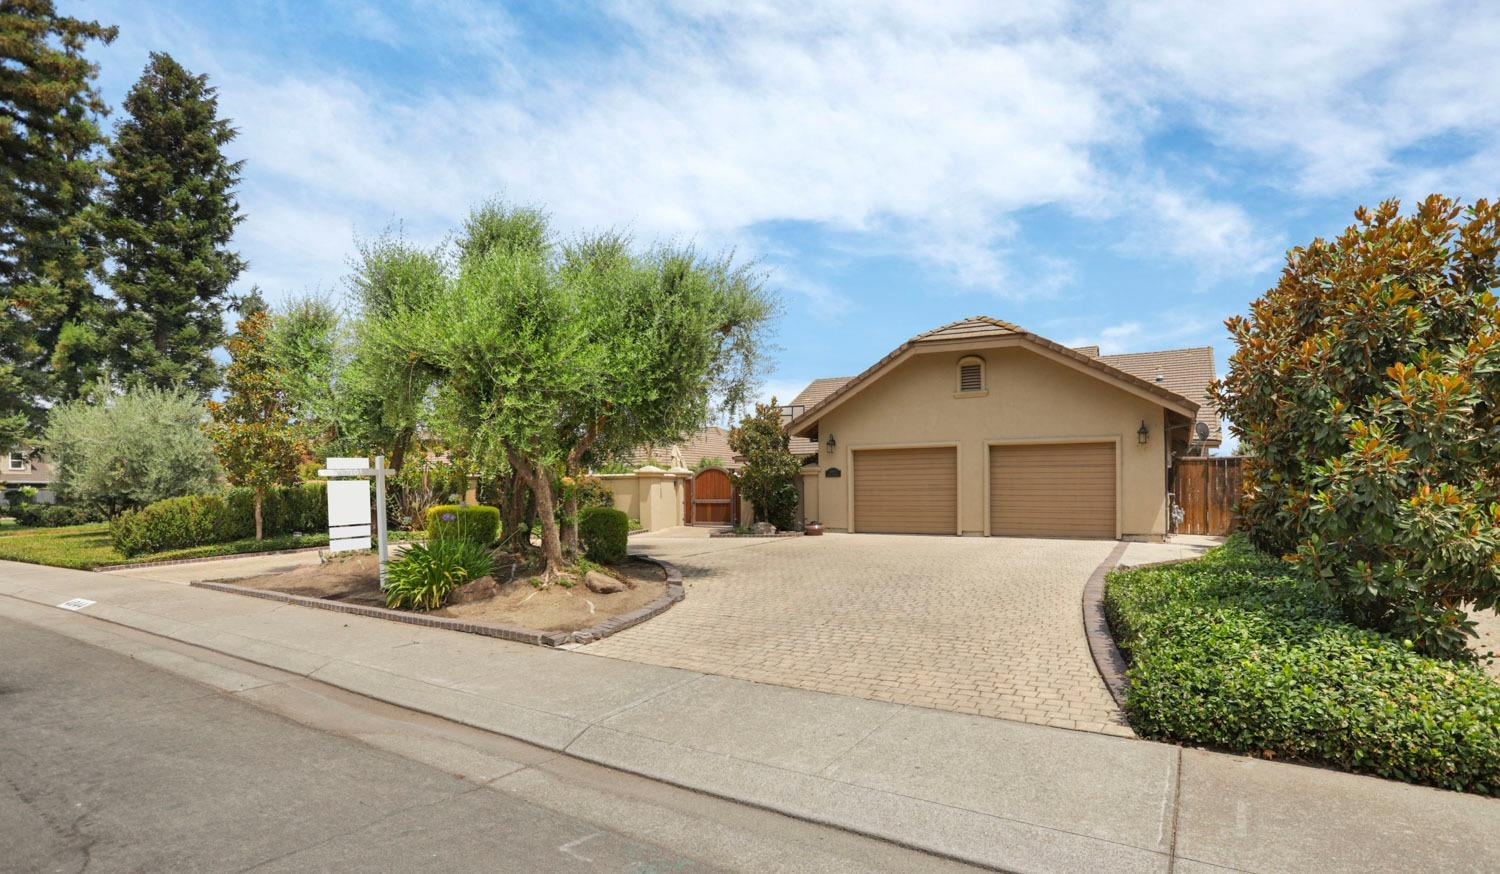 Photo of 4044 Fort Donelson Drive, Stockton, CA 95219